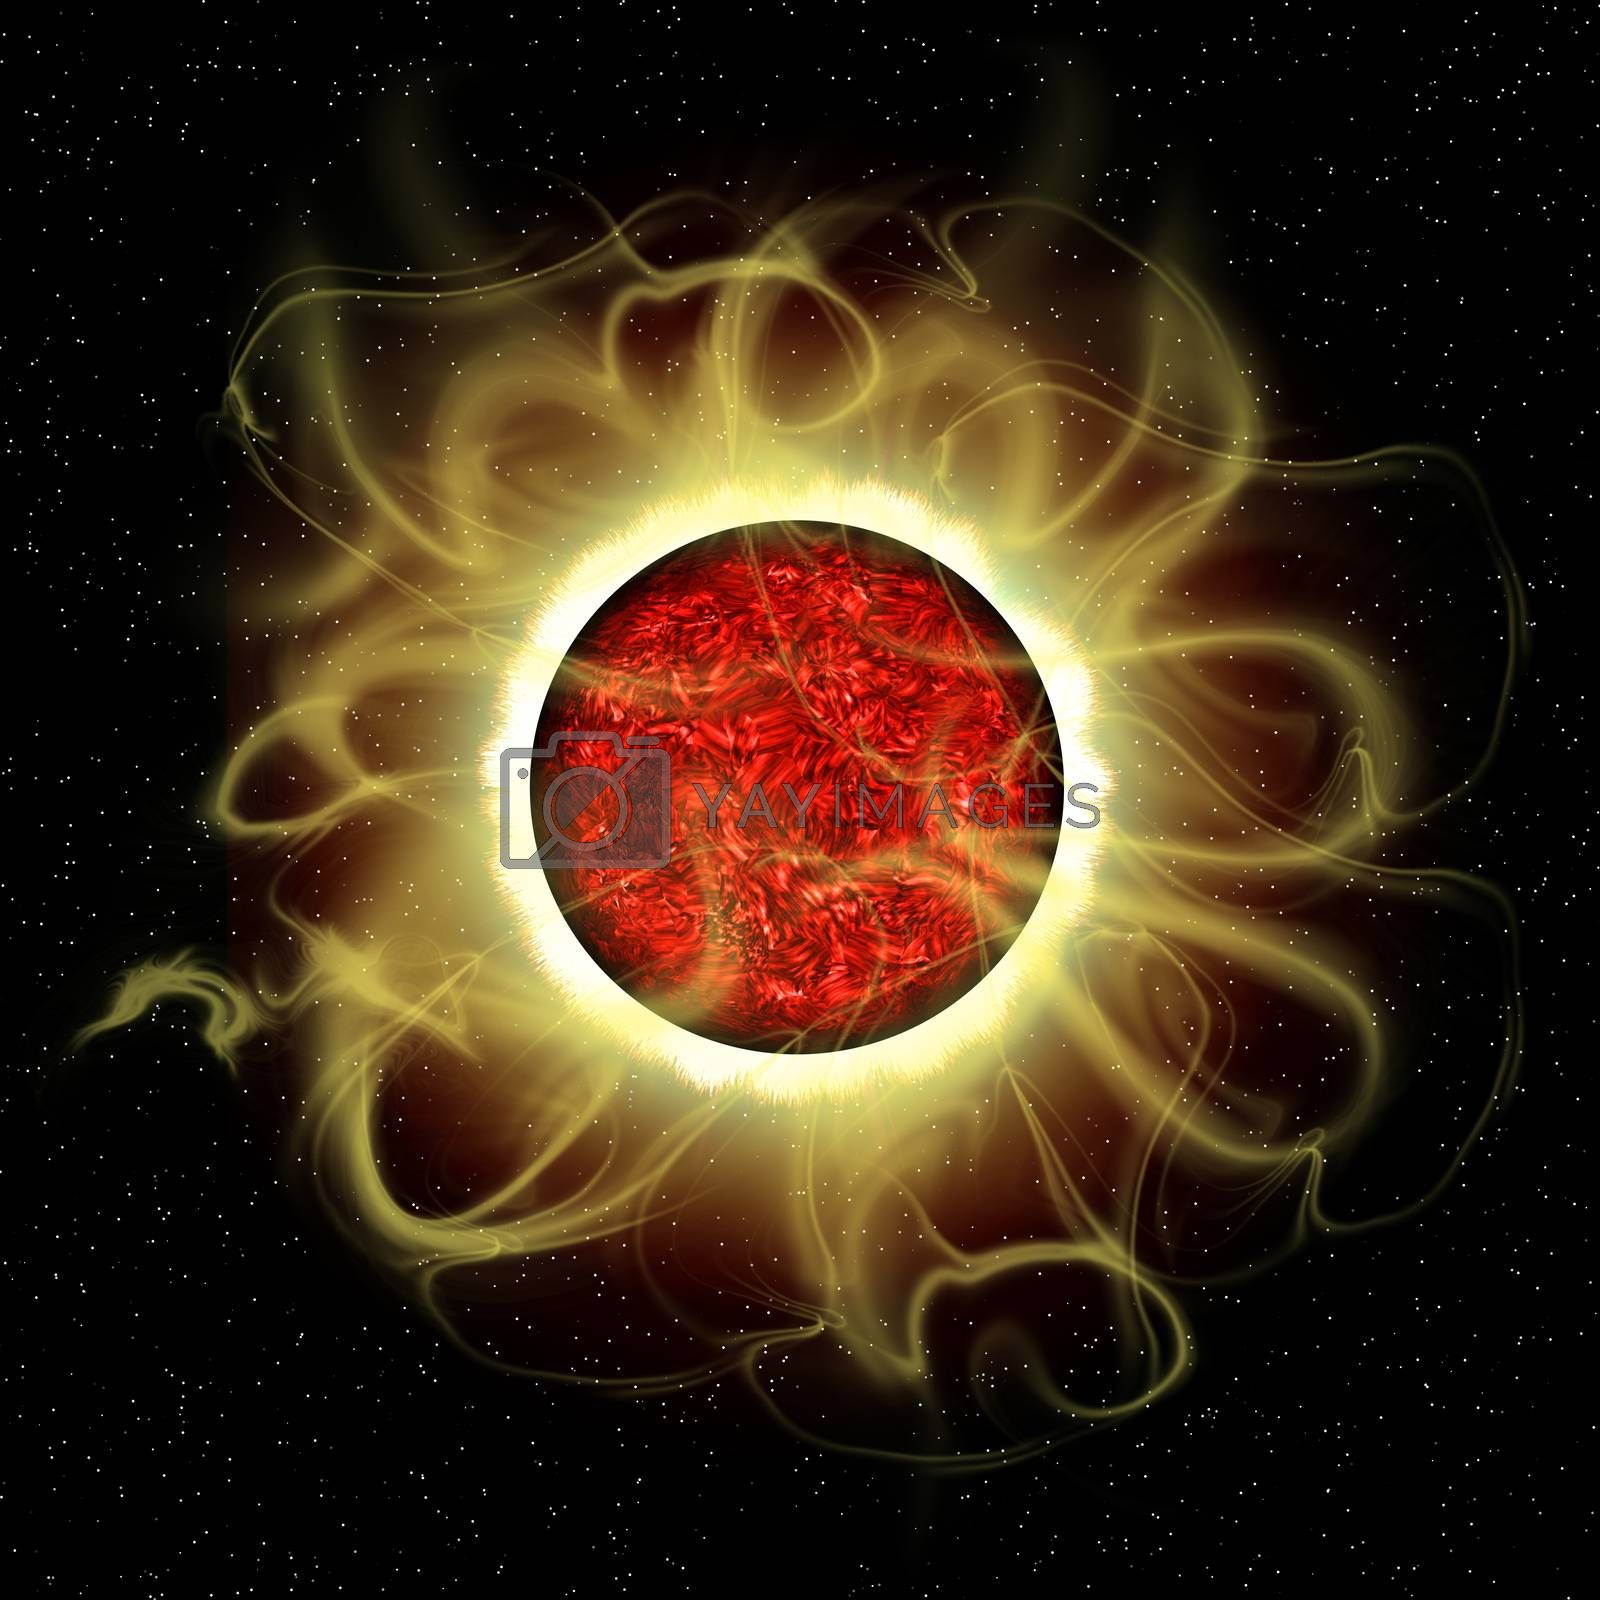 The sun is a molten composite of metals and gases and every 11 years there is a cycle of solar flare activity caused from disruption of magnetic fields.